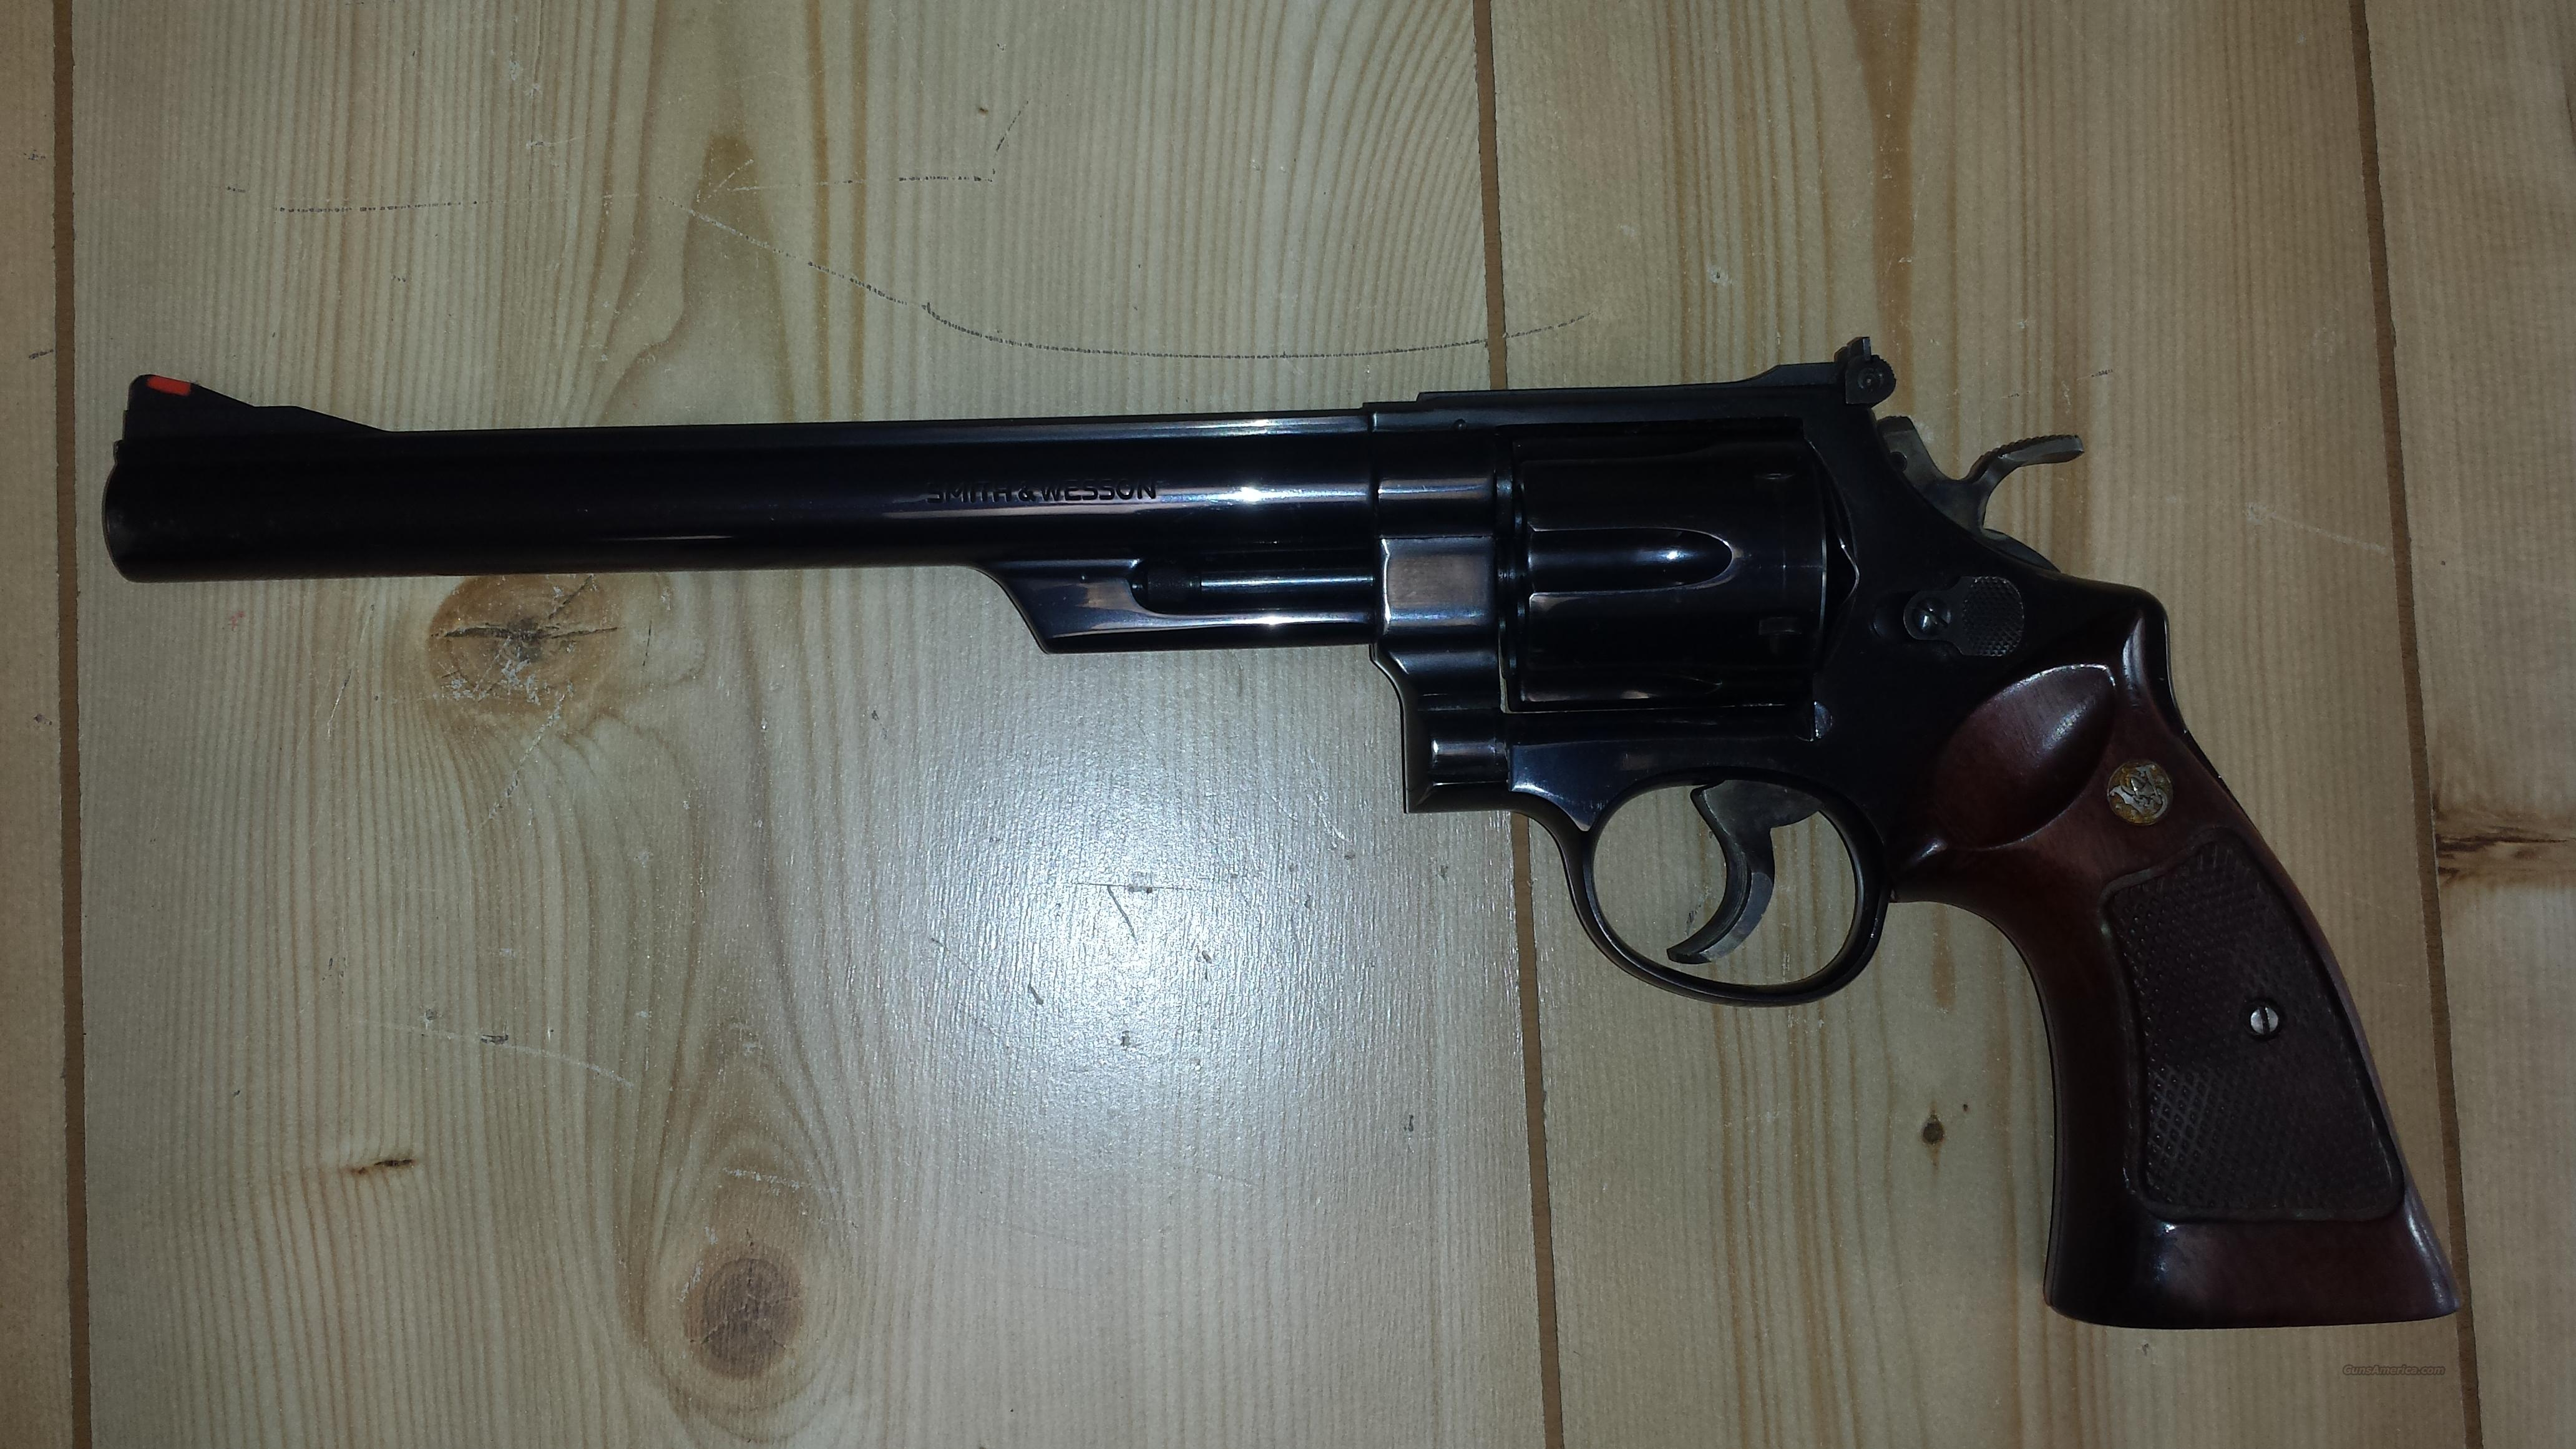 S&W 29-2 .44 MAGNUM  Guns > Pistols > Smith & Wesson Revolvers > Full Frame Revolver